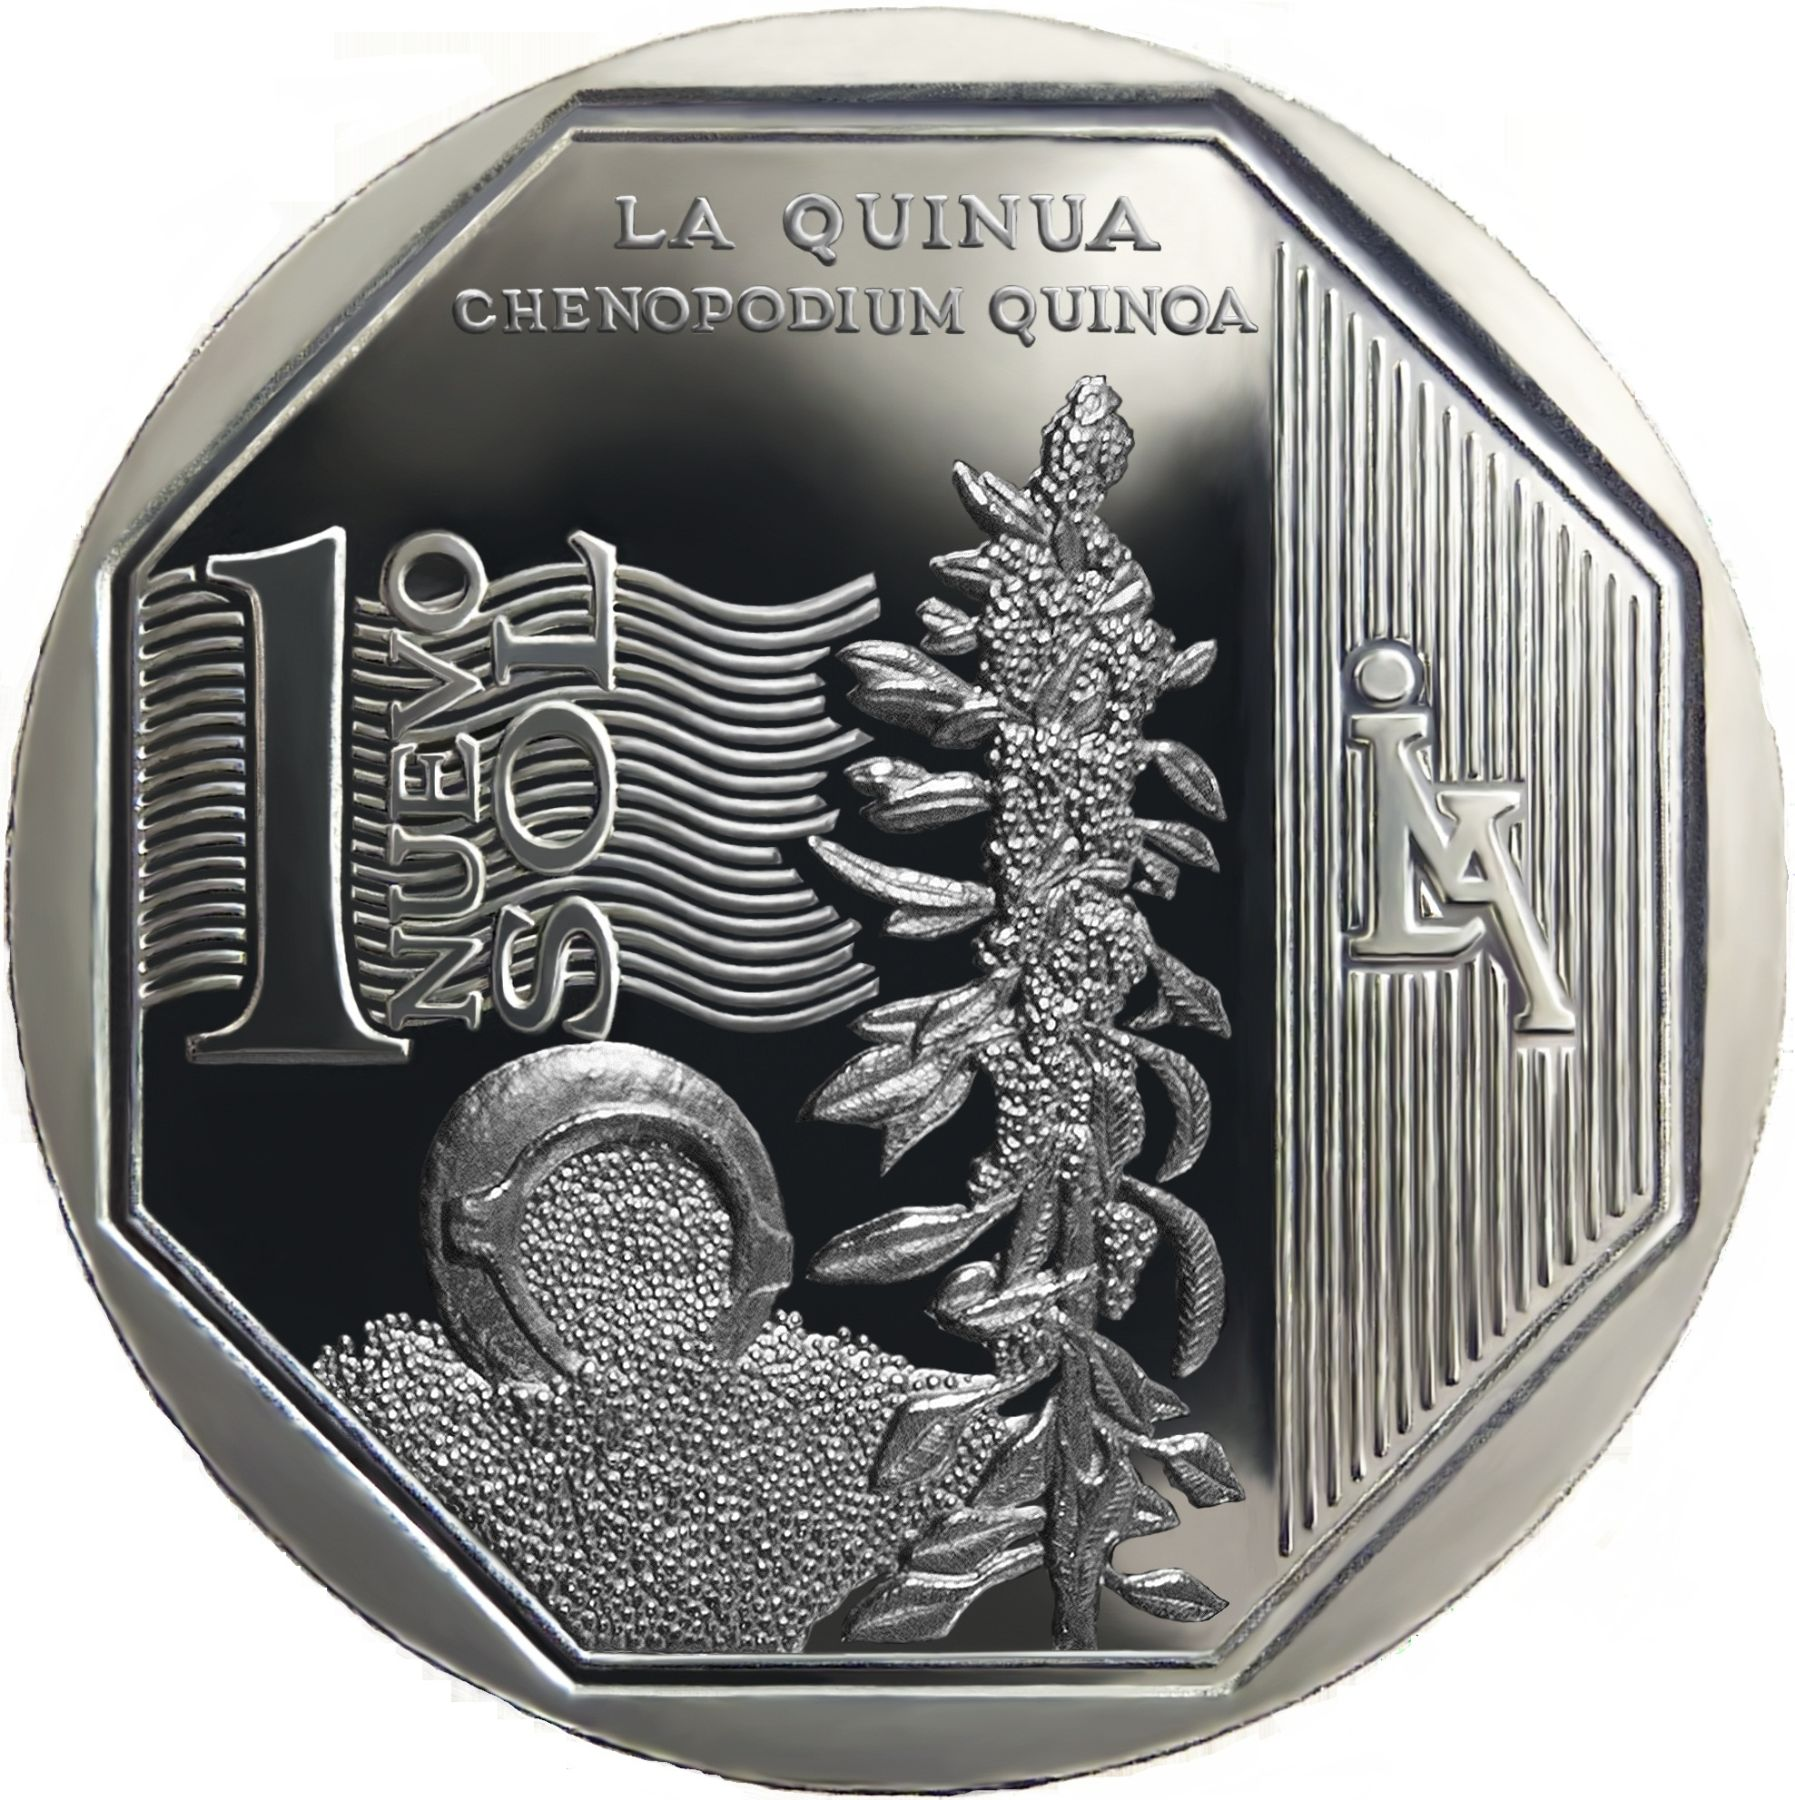 New one sol coin depicting quinoa.